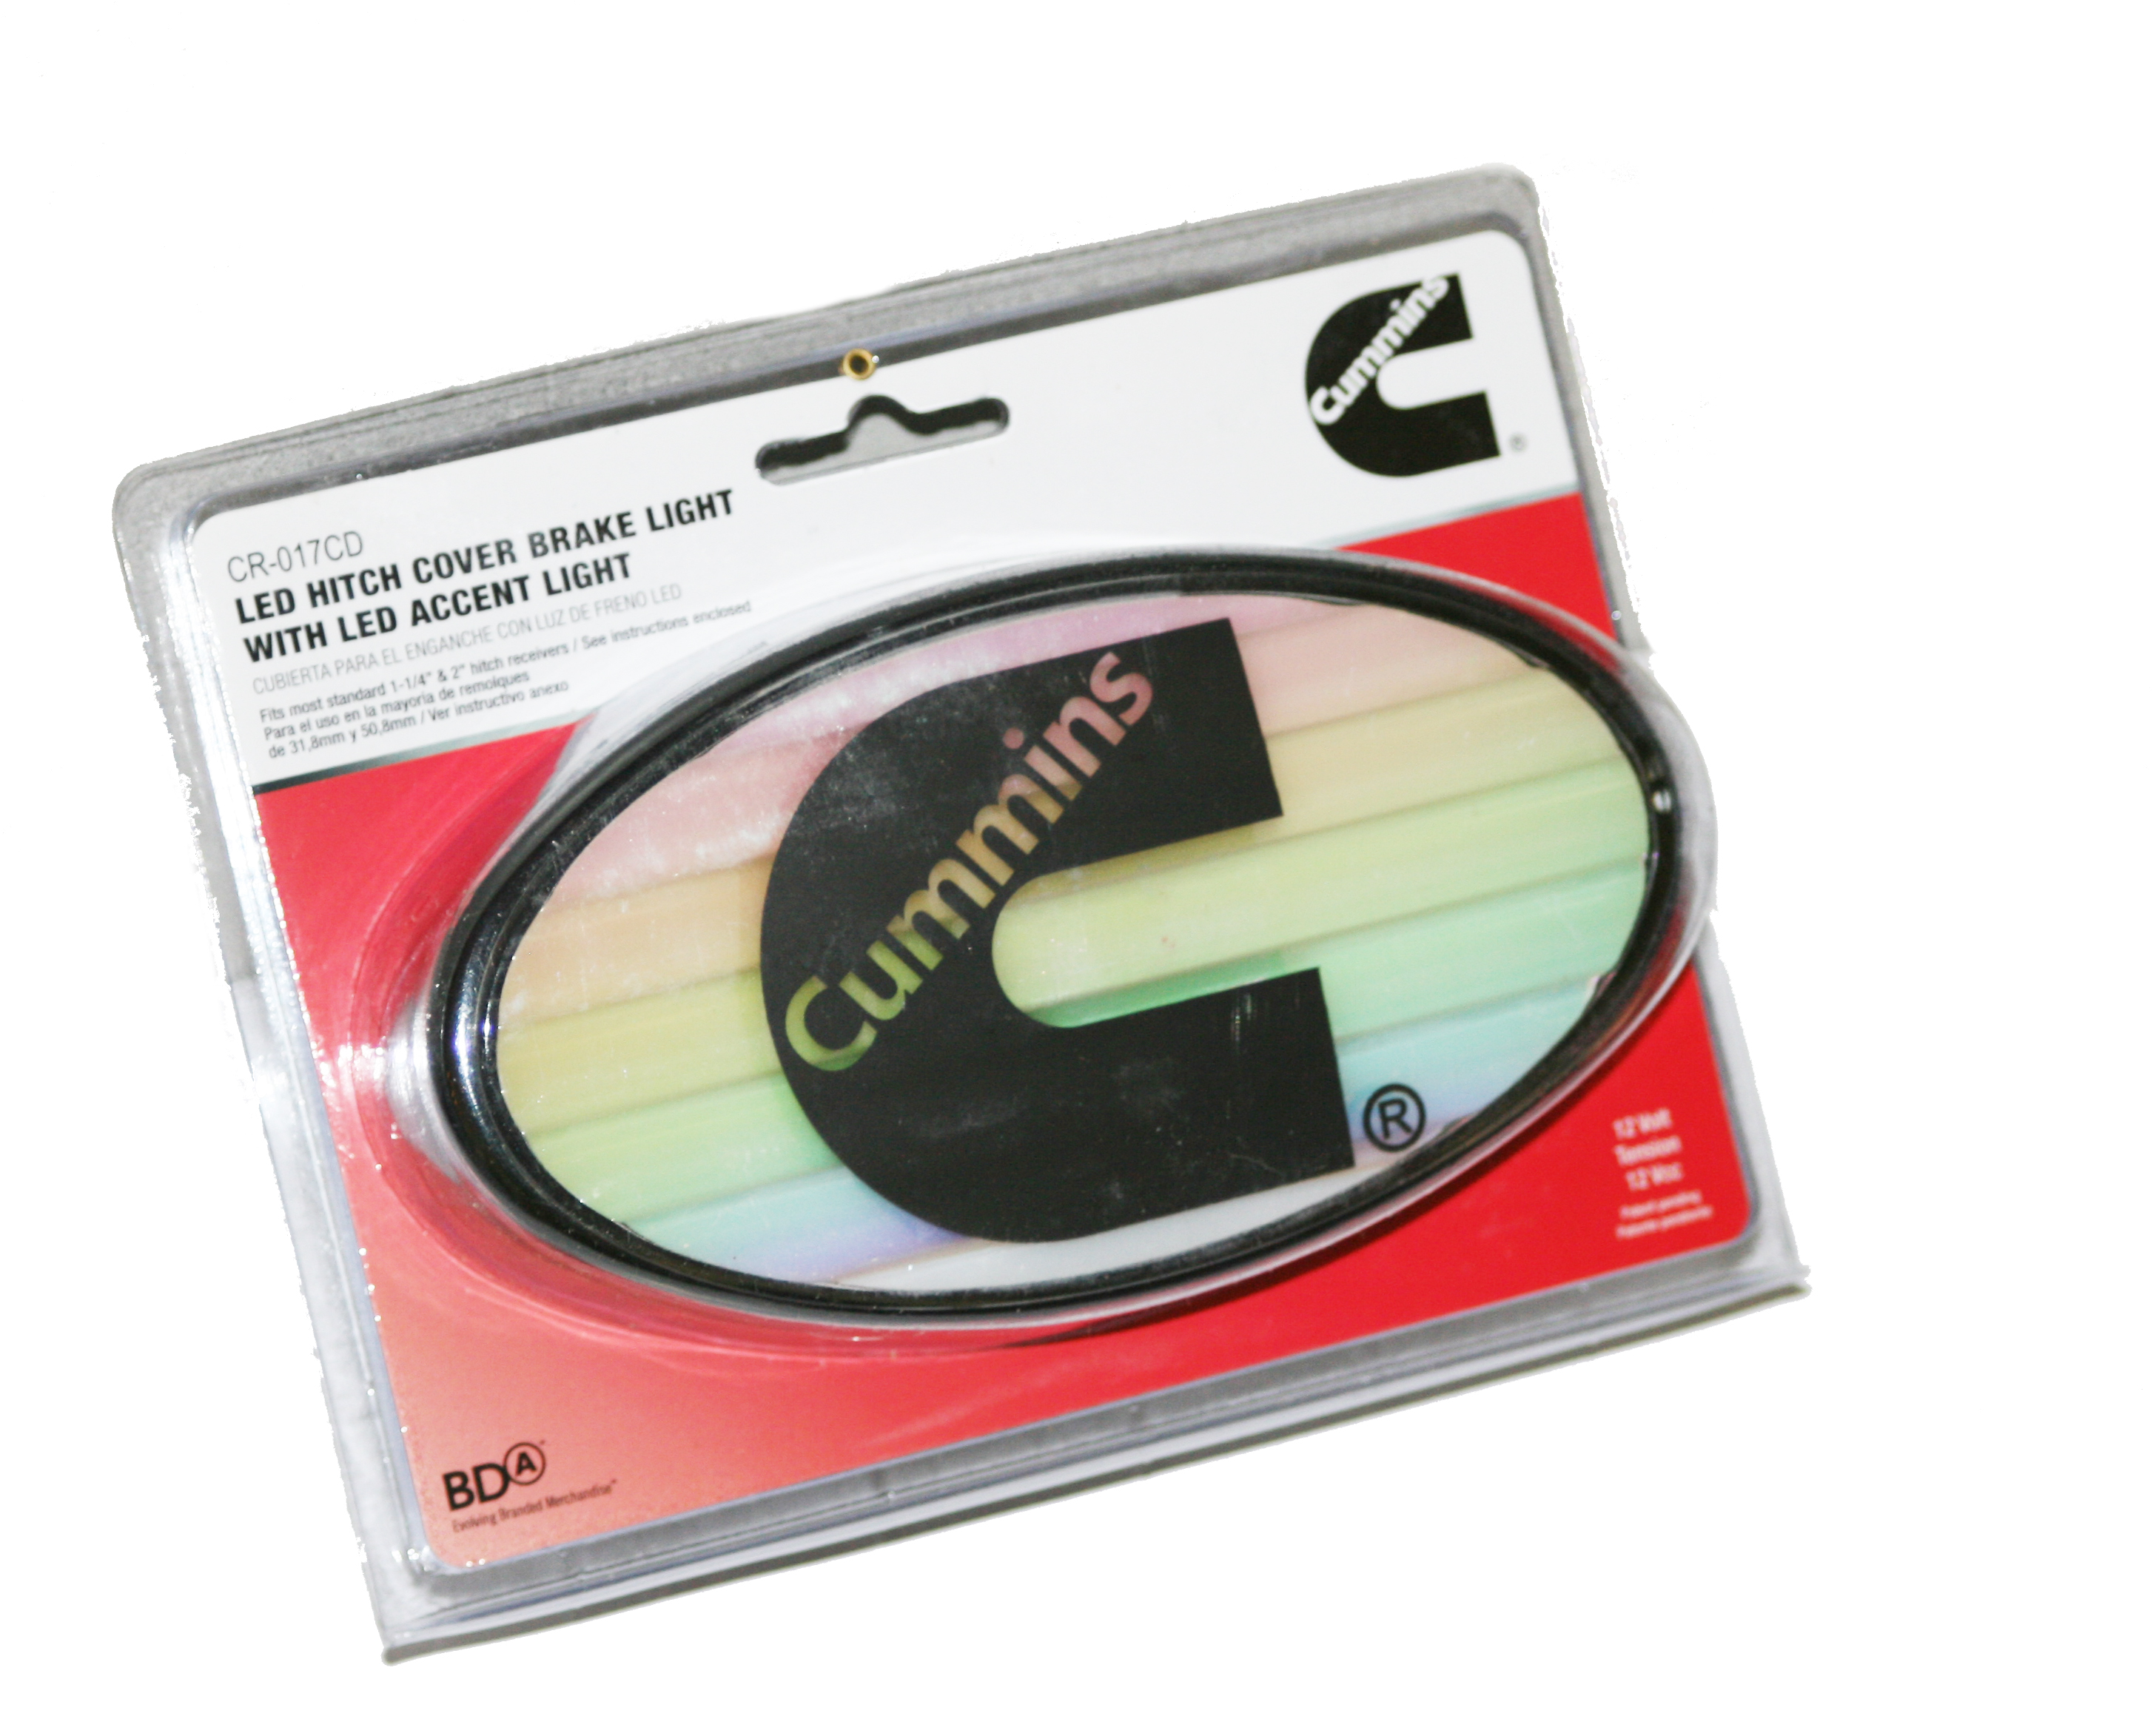 Cr Cd on Trailer Hitch Cover Brake Light